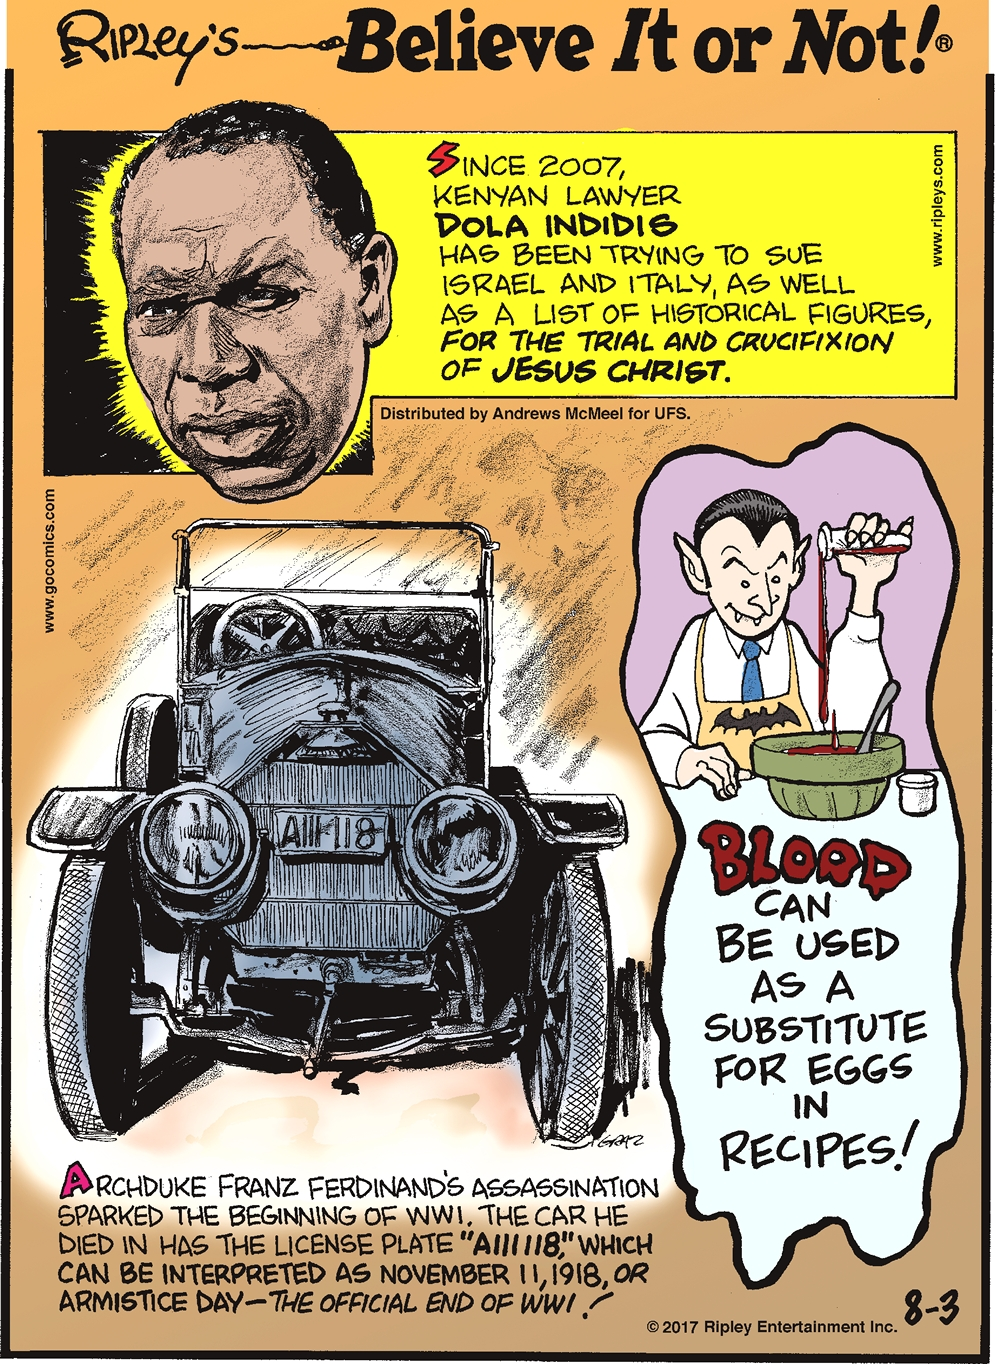 """Since 2007, Kenyan lawyer Dola Indidis has been trying to sue Israel and Italy, as well as a list of historical figures, for the trial and crucifixion of Jesus Christ.-------------------- Archduke Franz Ferdinand's assassination sparked the beginning of WWI. The car he died in has the license plate """"A111118,""""which can be interpreted as November 11,1918, or Armistice Day - the official end of WWI!-------------------- Blood can be used as a substitute for eggs in recipes!"""